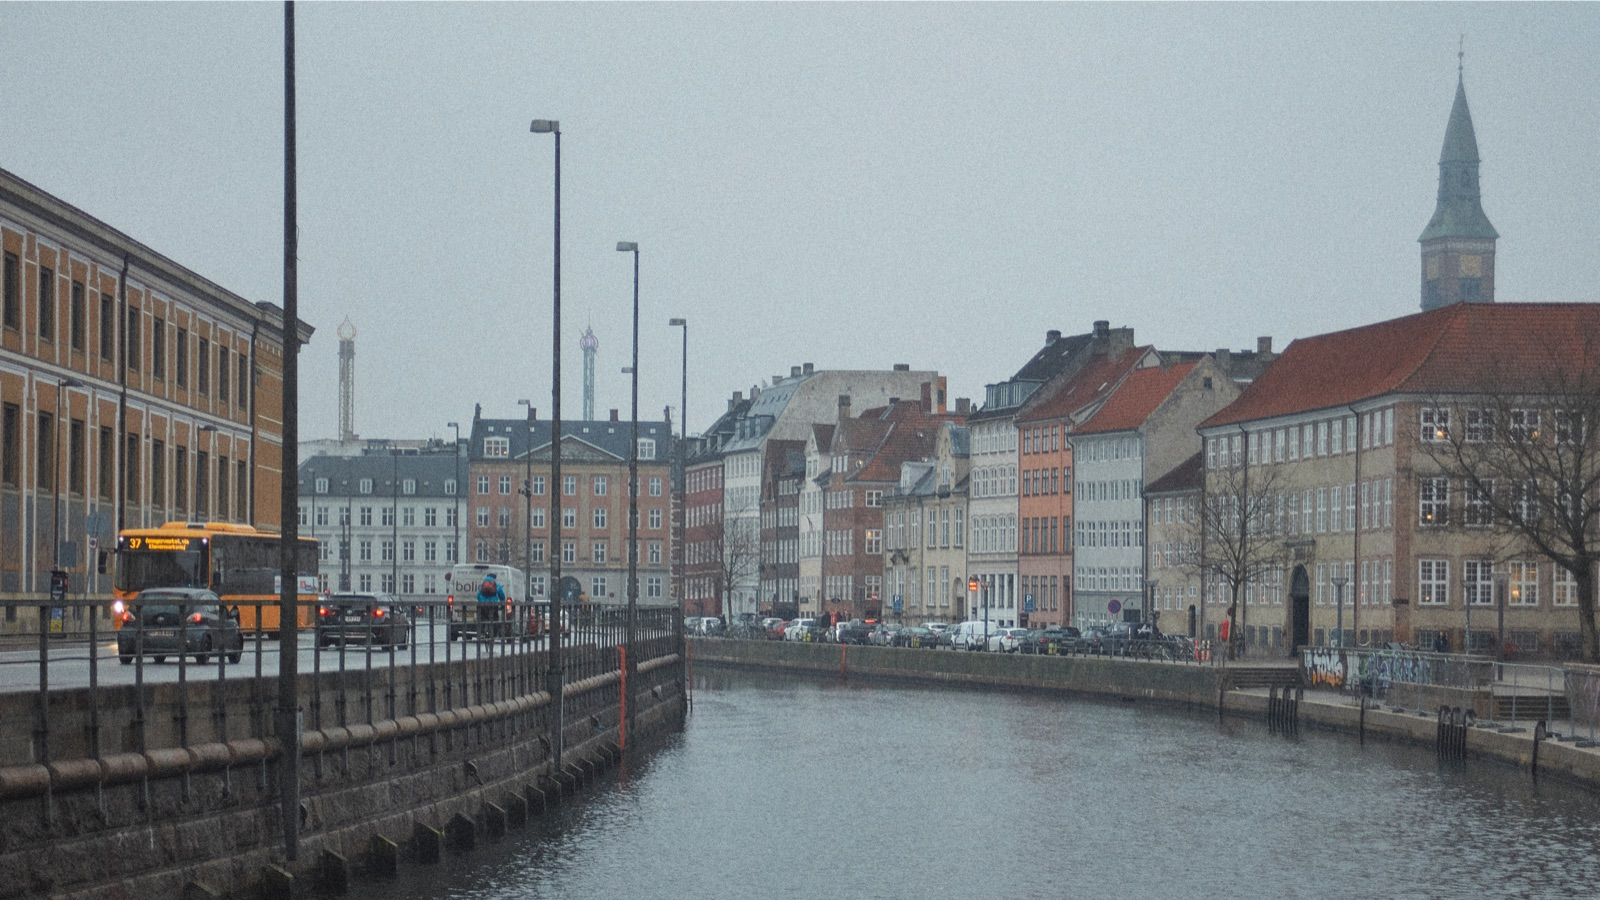 A river on a rainy day in Copenhagen, with buildings on the right and a road on the left.